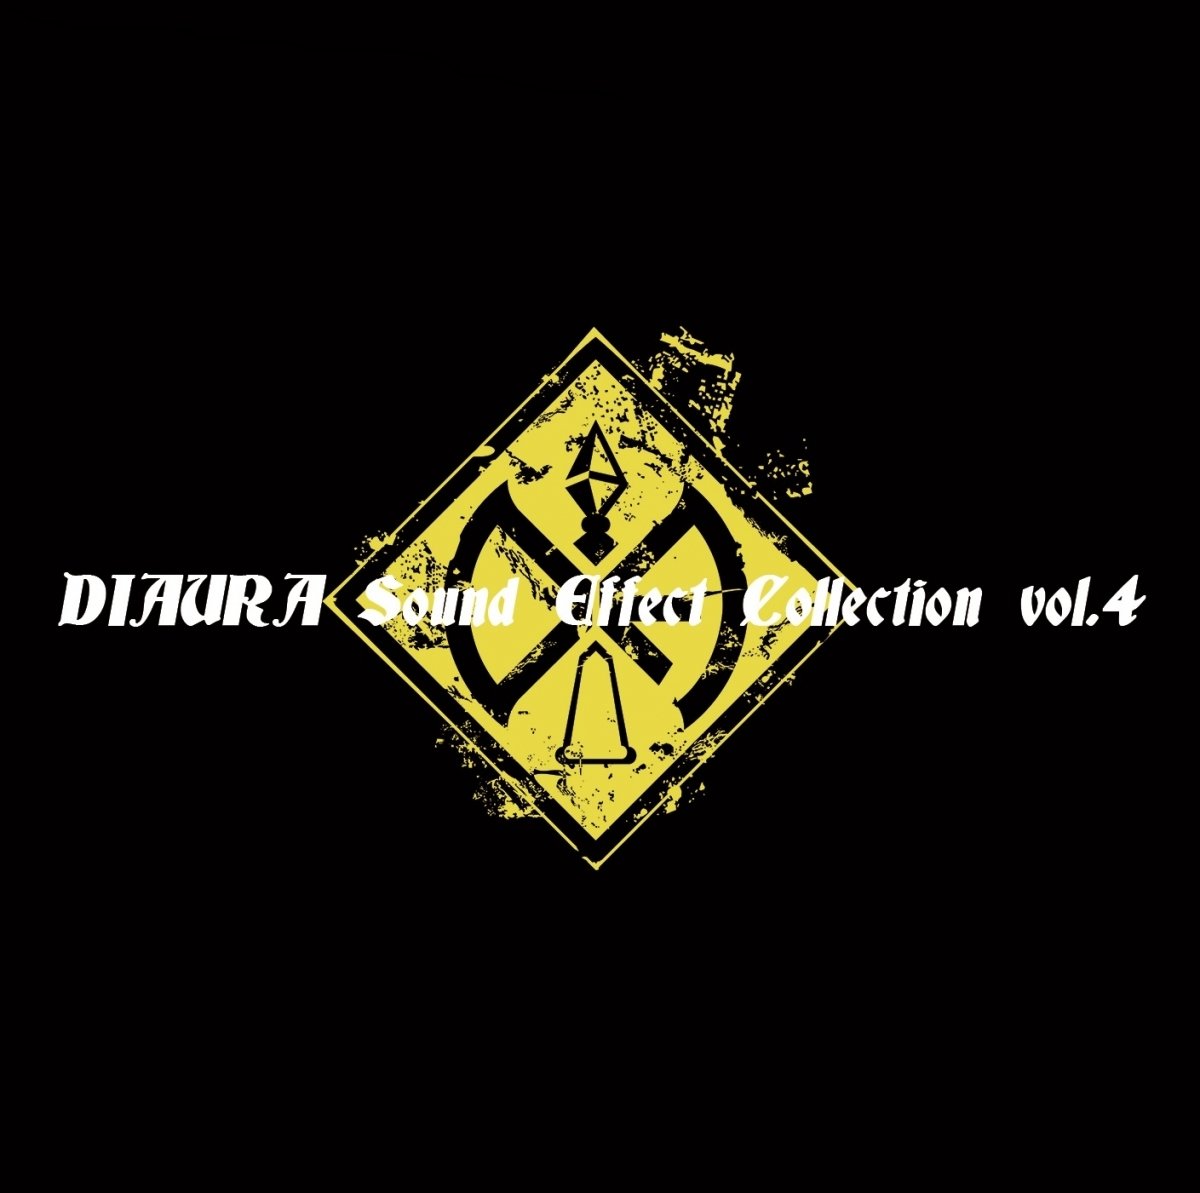 佳衣完全プロデュースのDIAURA SE集『DIAURA Sound Effect Collection vol.4』